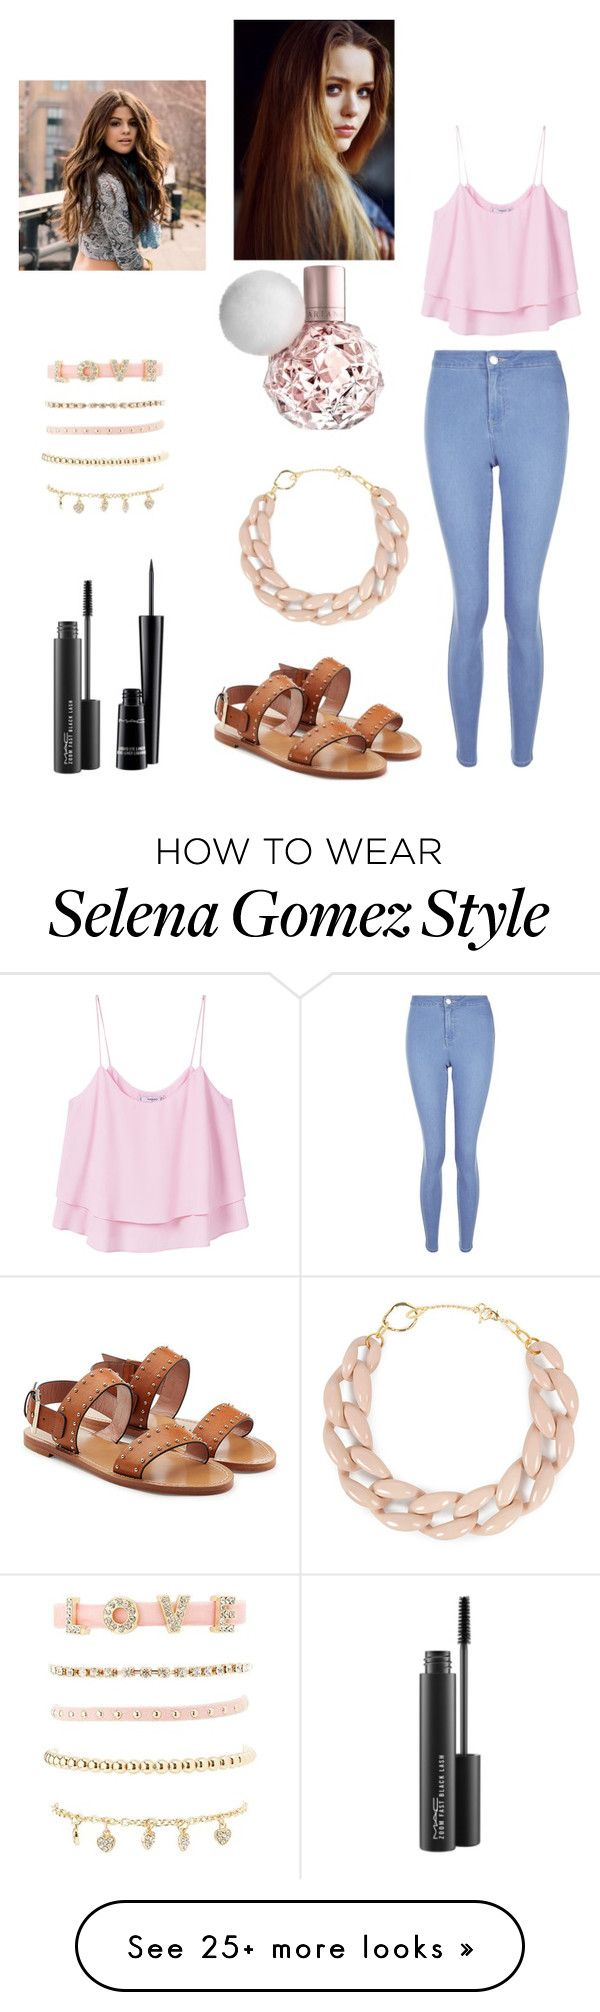 """""""A day out with Selena Gomez"""" by queenprincessliarra on Polyvore featuring MANGO, New Look, RED Valentino, Toni&Guy, MAC Cosmetics, Charlotte Russe and DIANA BROUSSARD"""